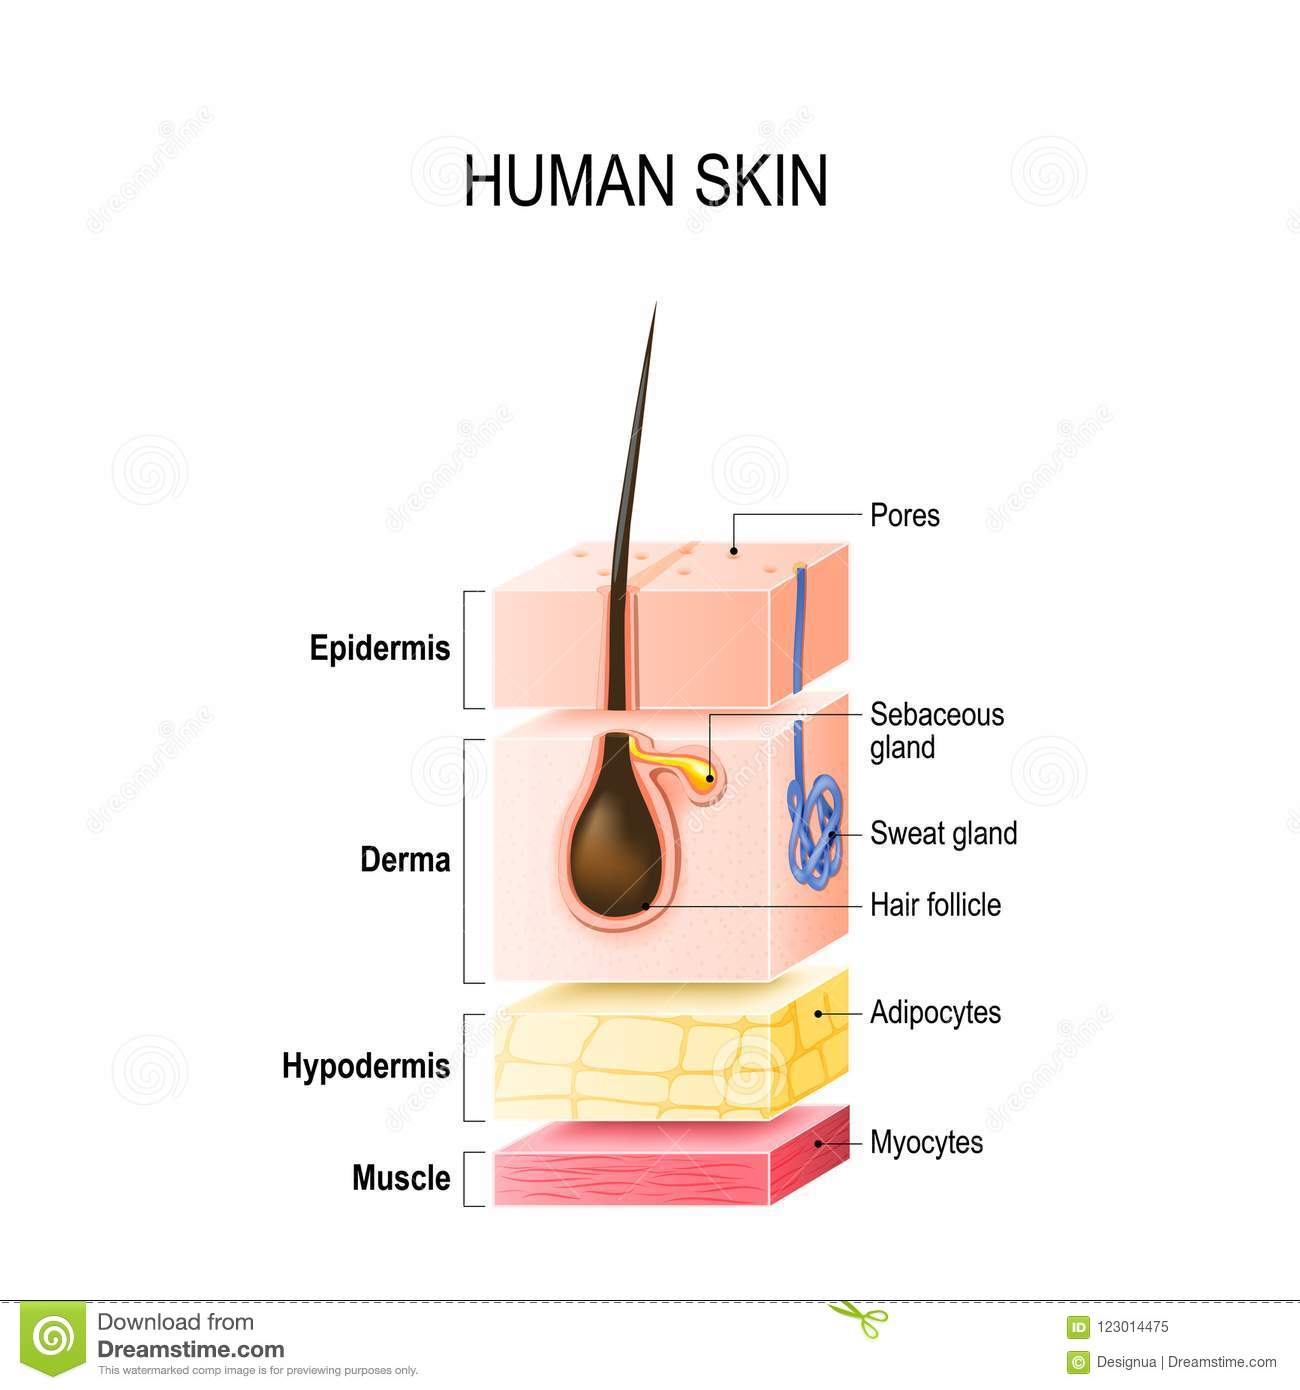 layers of healthy human skin with hair follicle, sweat and sebaceous glands   epidermis, dermis, hypodermis and muscle tissue  vector illustration for  your